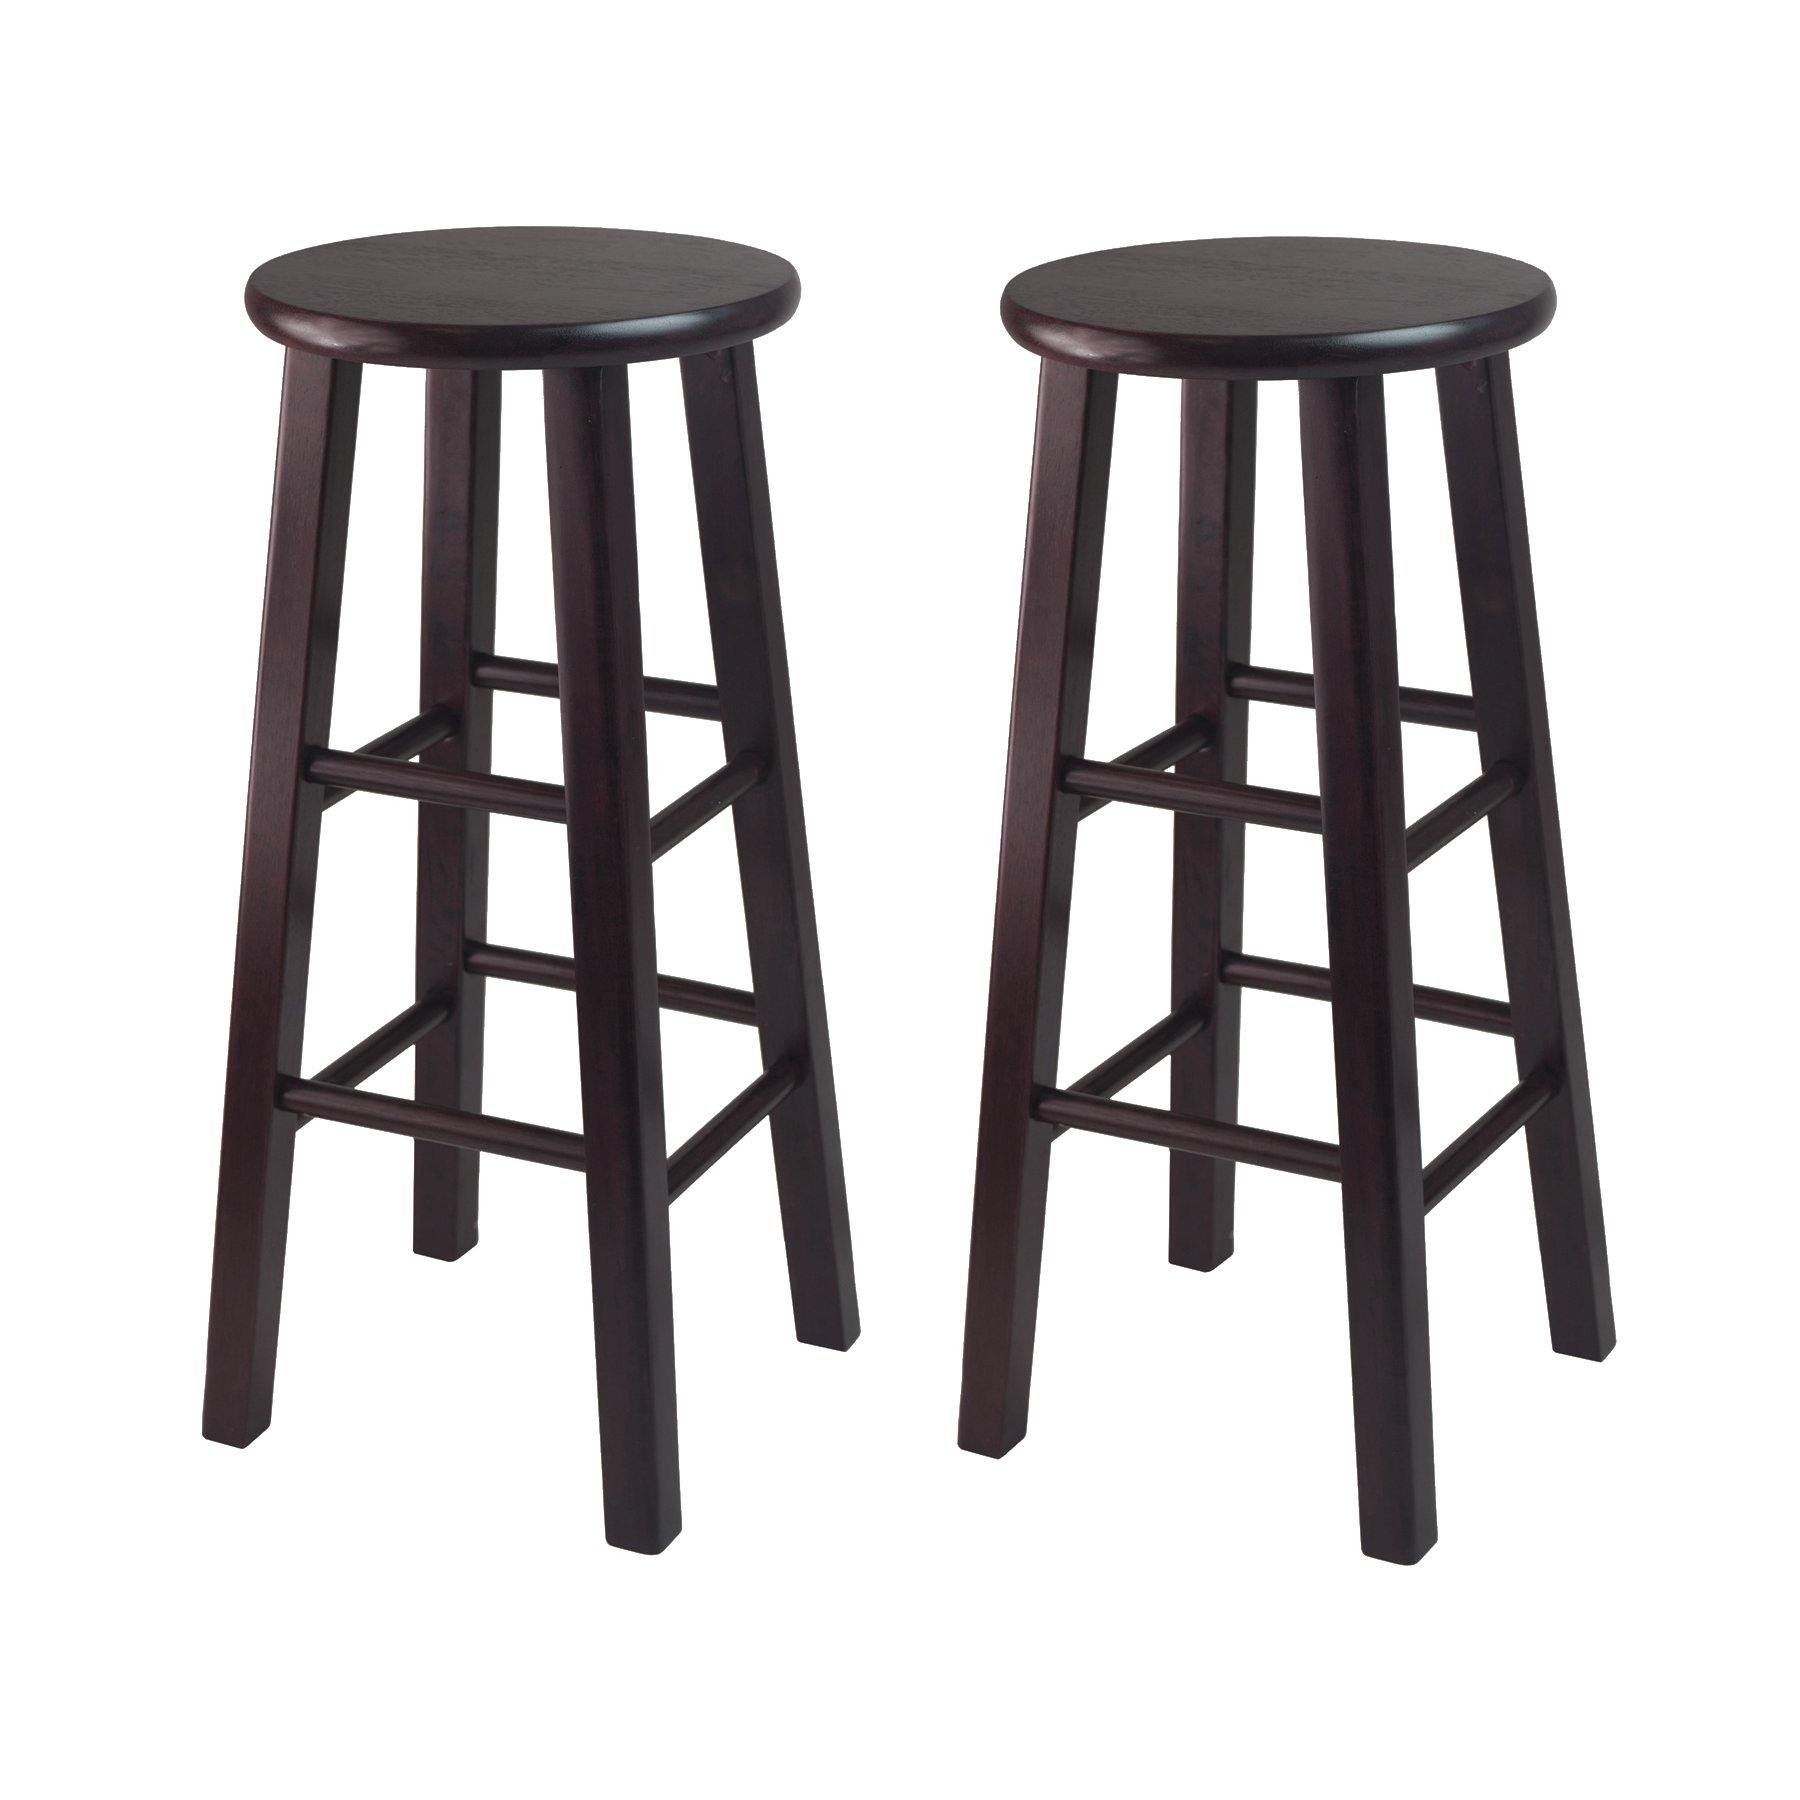 Pacey Bar Stools, 2-Pc Set, Espresso - My USA Furniture